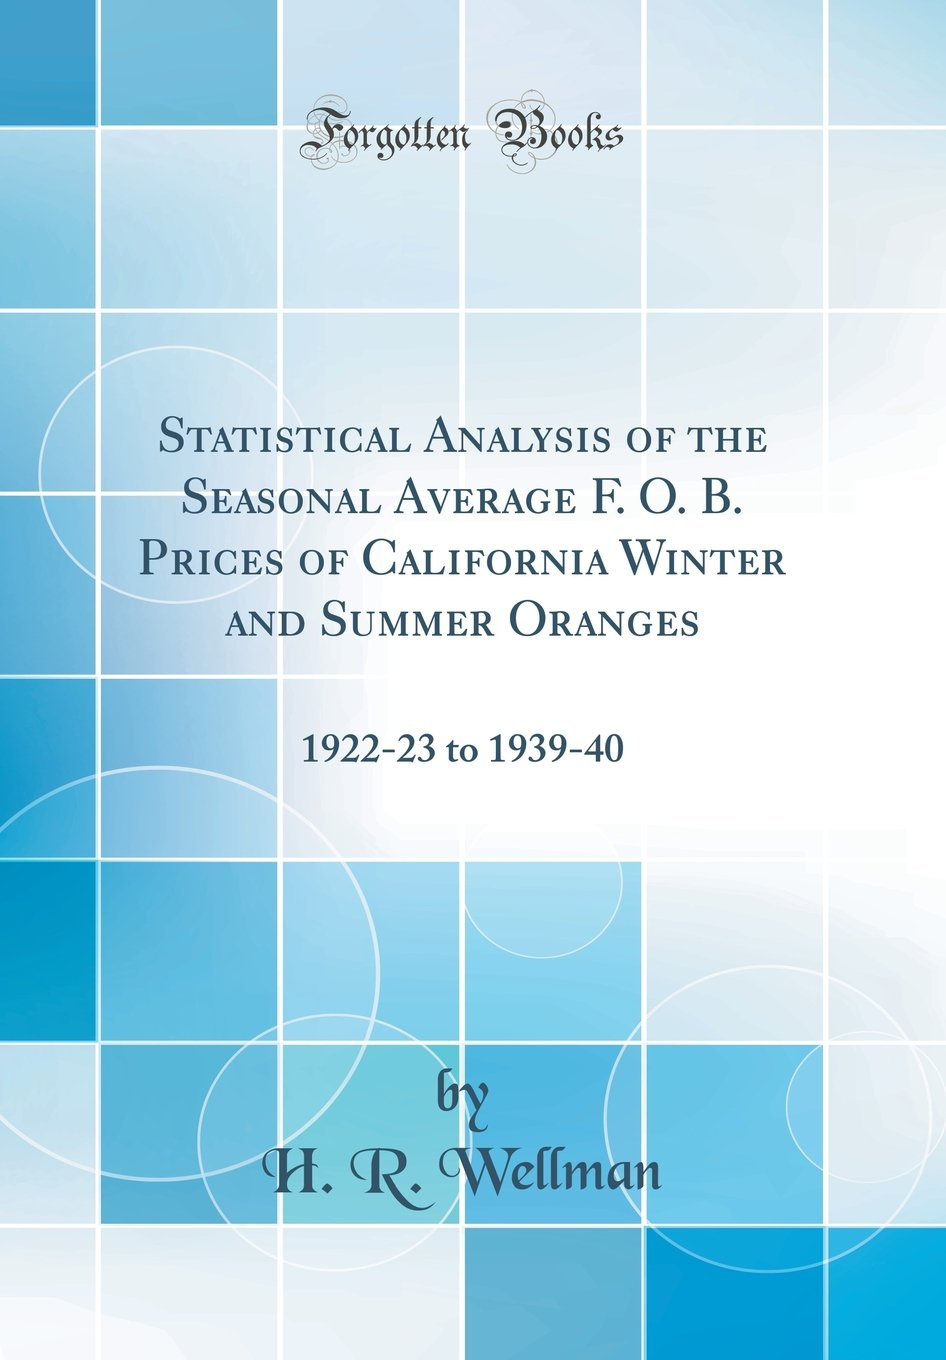 Statistical Analysis of the Seasonal Average F. O. B. Prices of California Winter and Summer Oranges: 1922-23 to 1939-40 (Classic Reprint) PDF